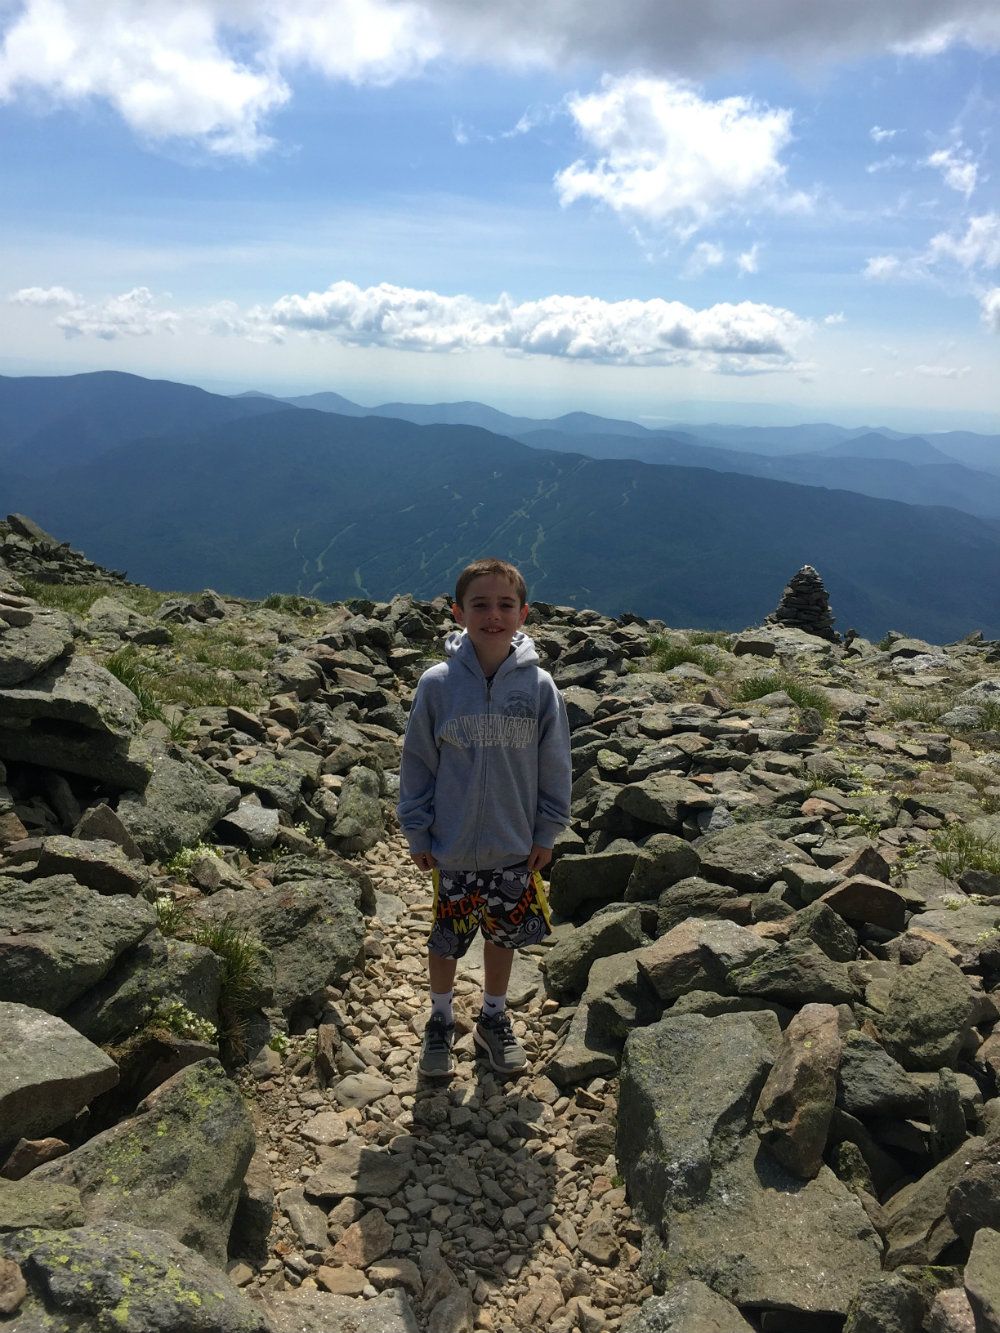 Hinking Mount Washington in New Hampshire.